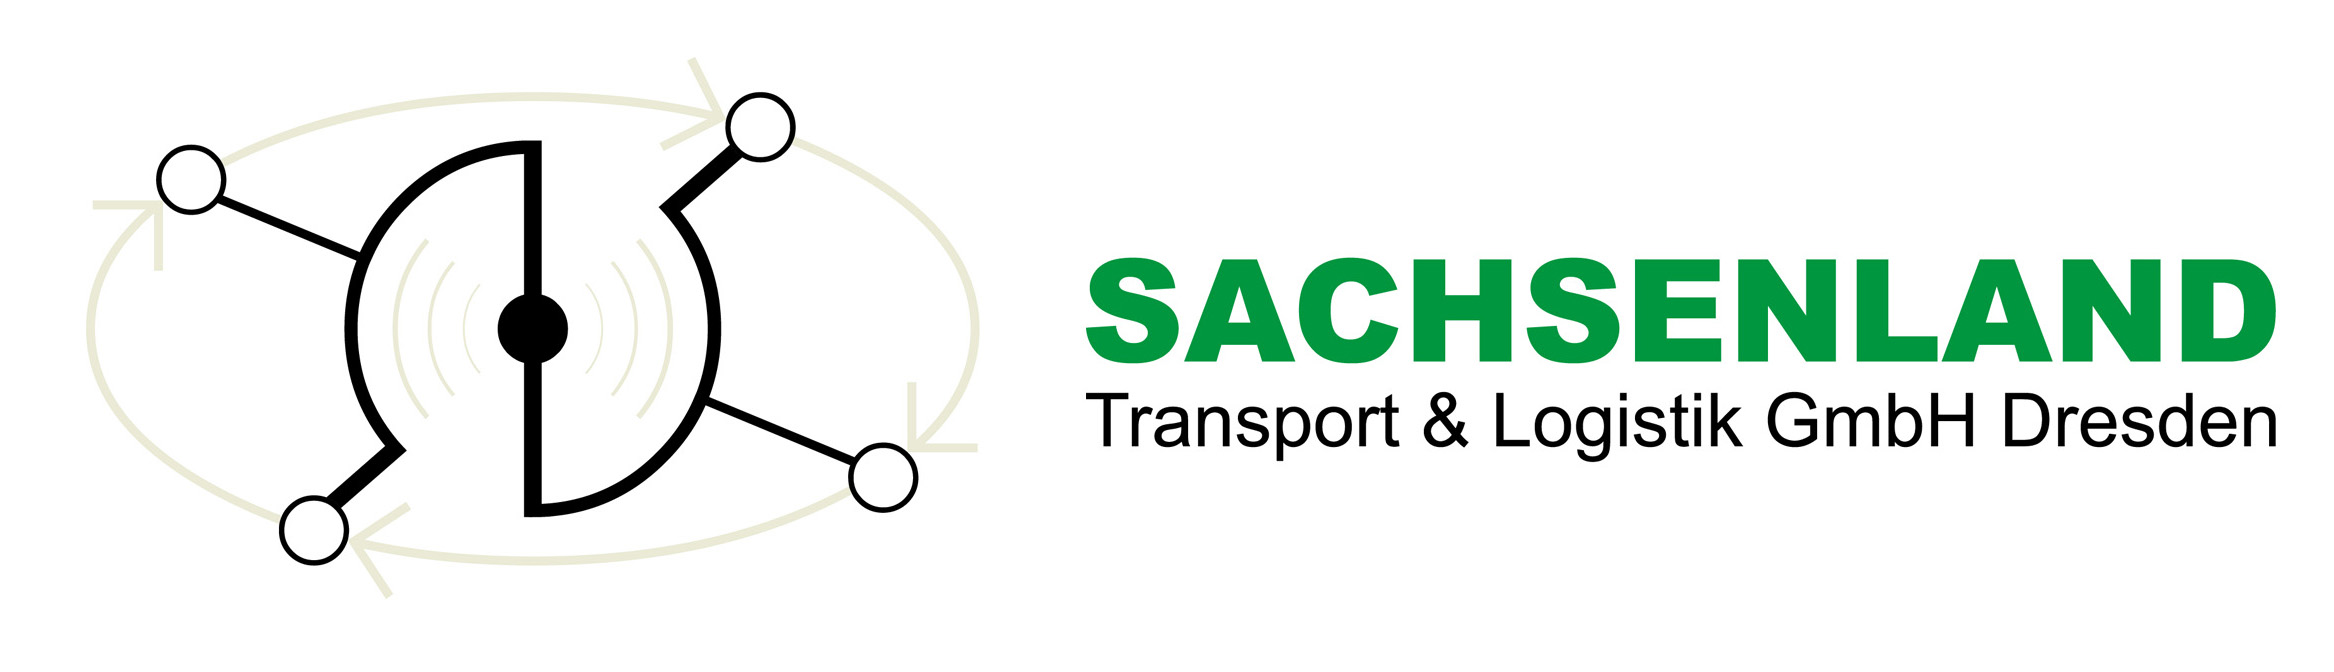 Sachsenland Transport & Logistik GmbH